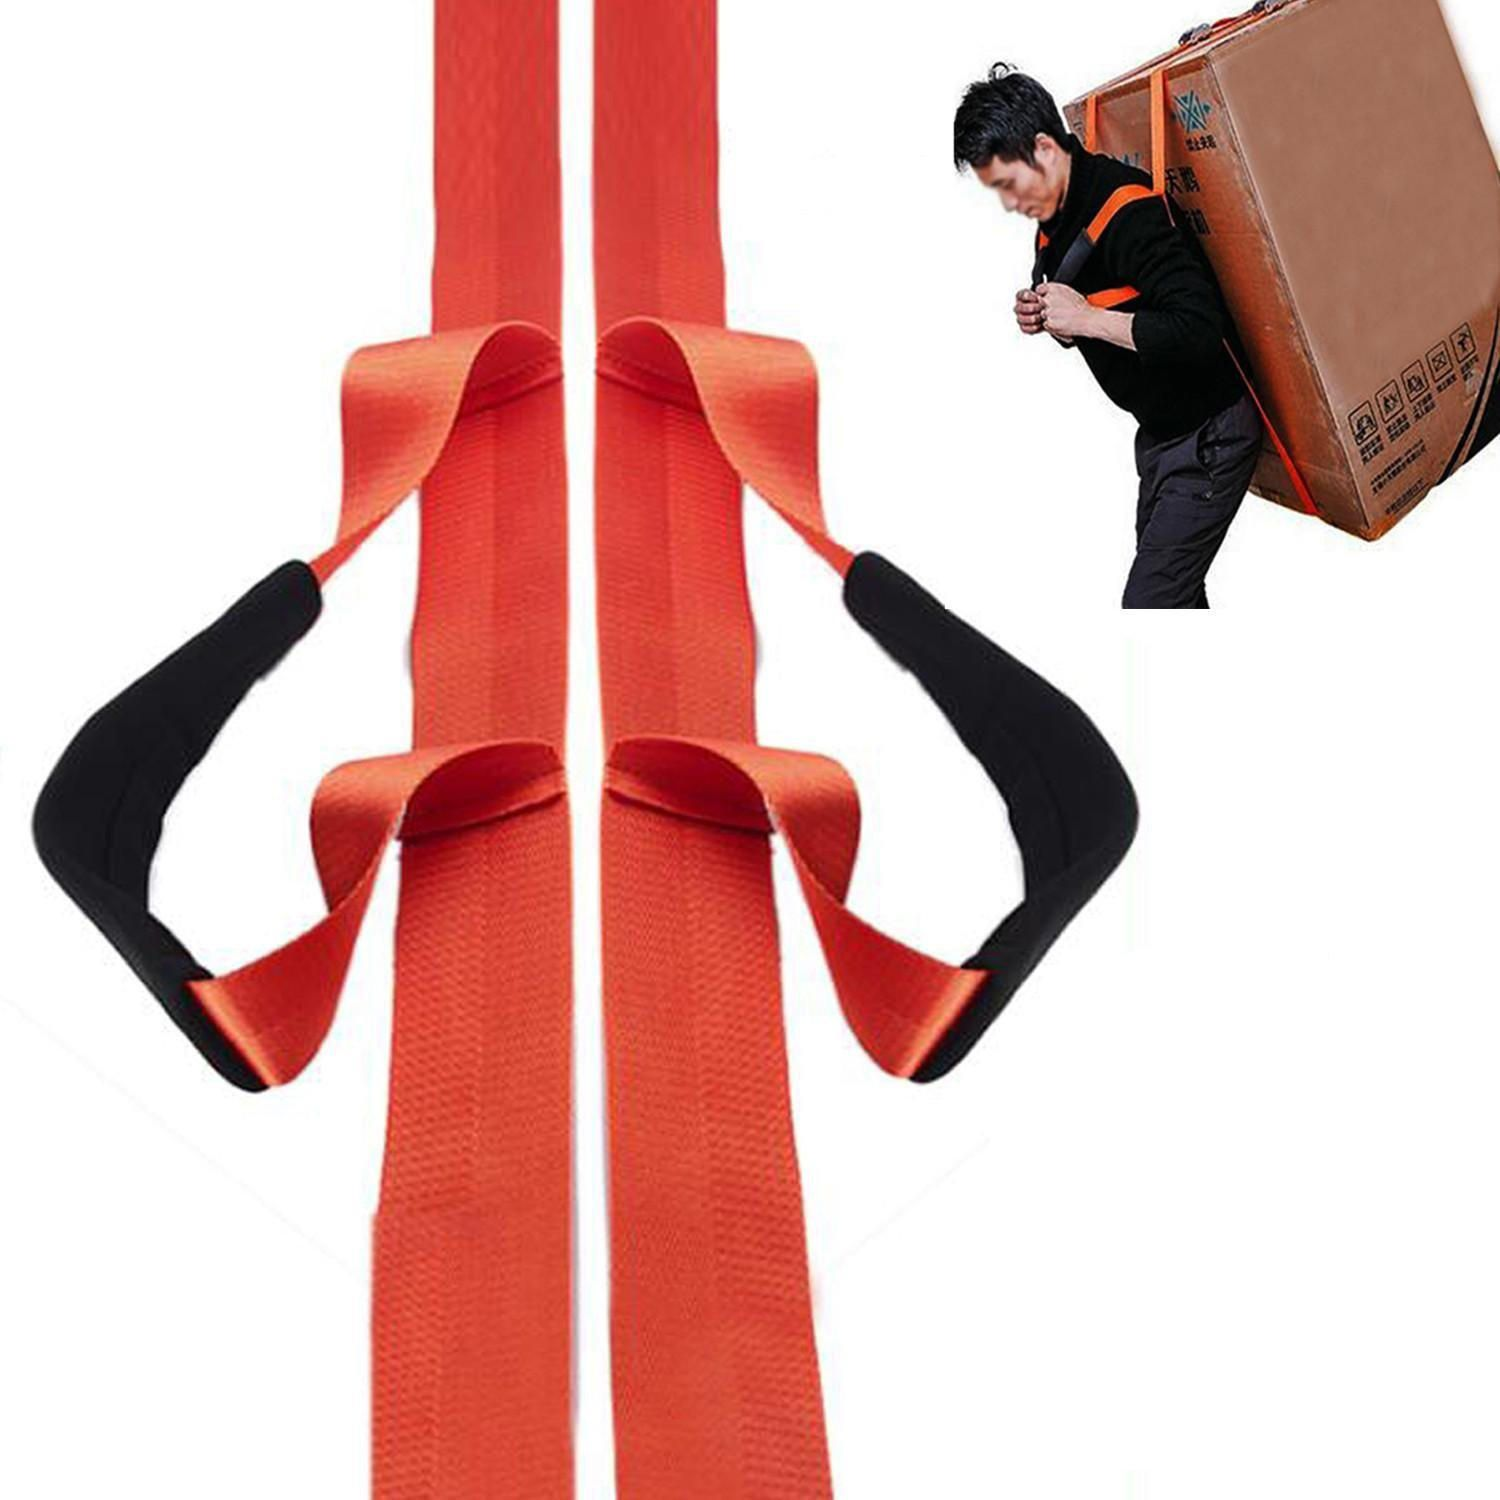 190ea2dffd7f 1 Person Furniture Lifting Moving Straps Carrying Belts Ergonomic ...